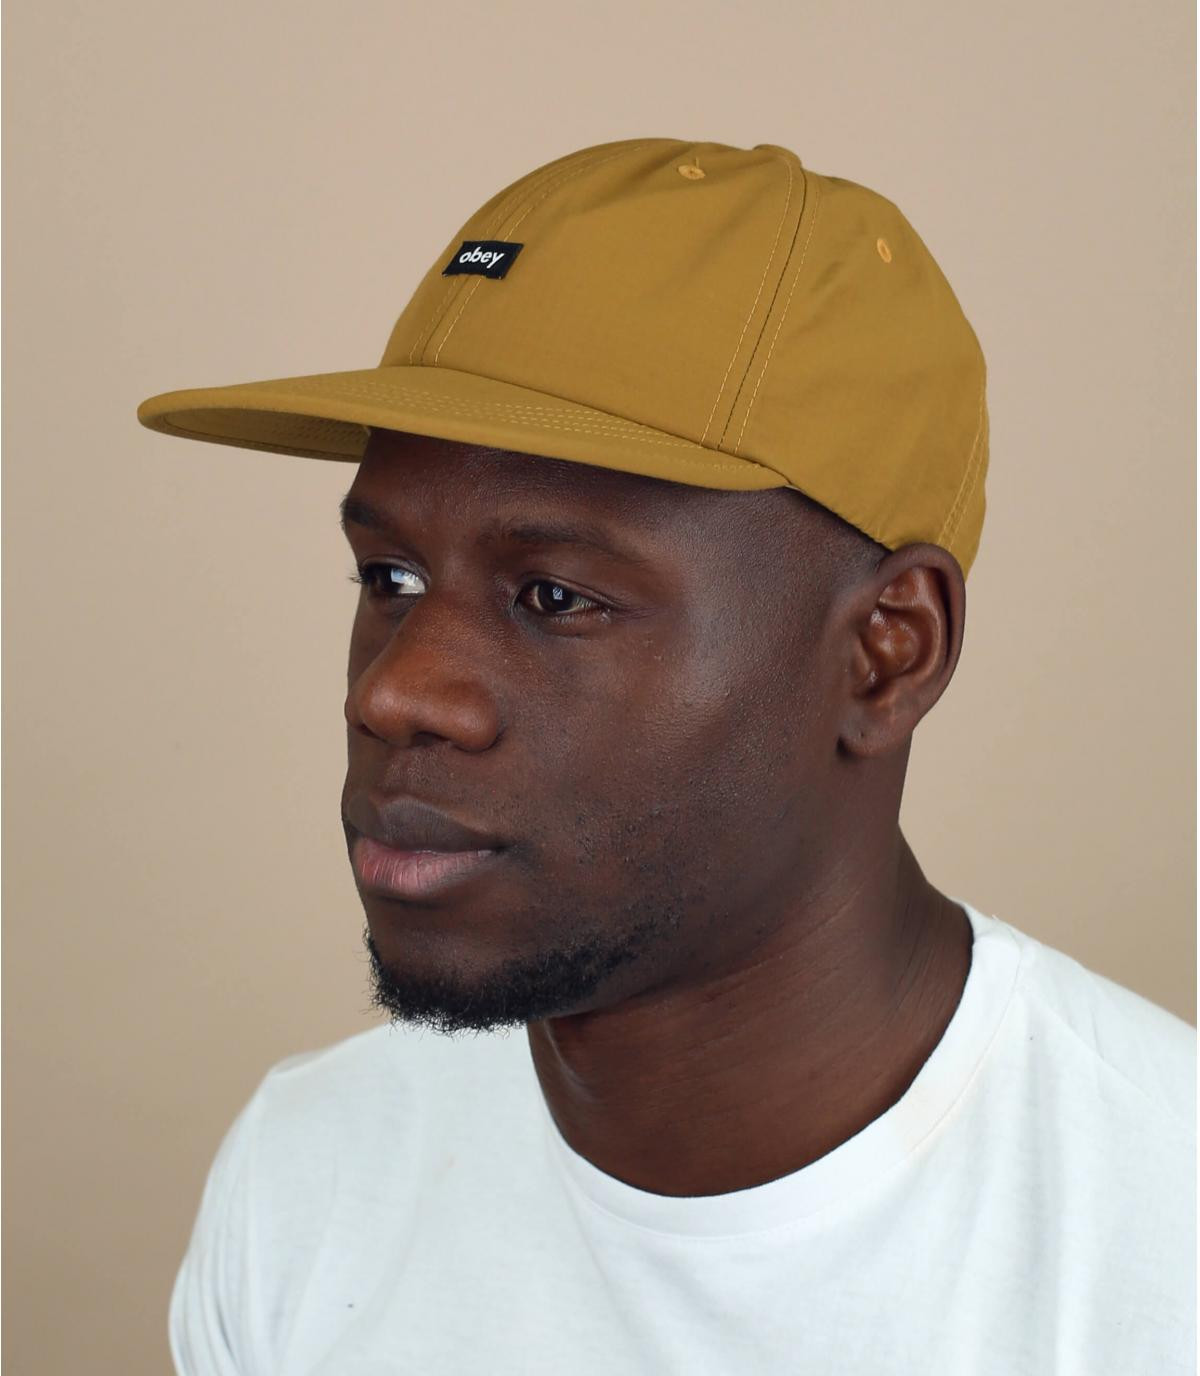 cappellino Obey beige